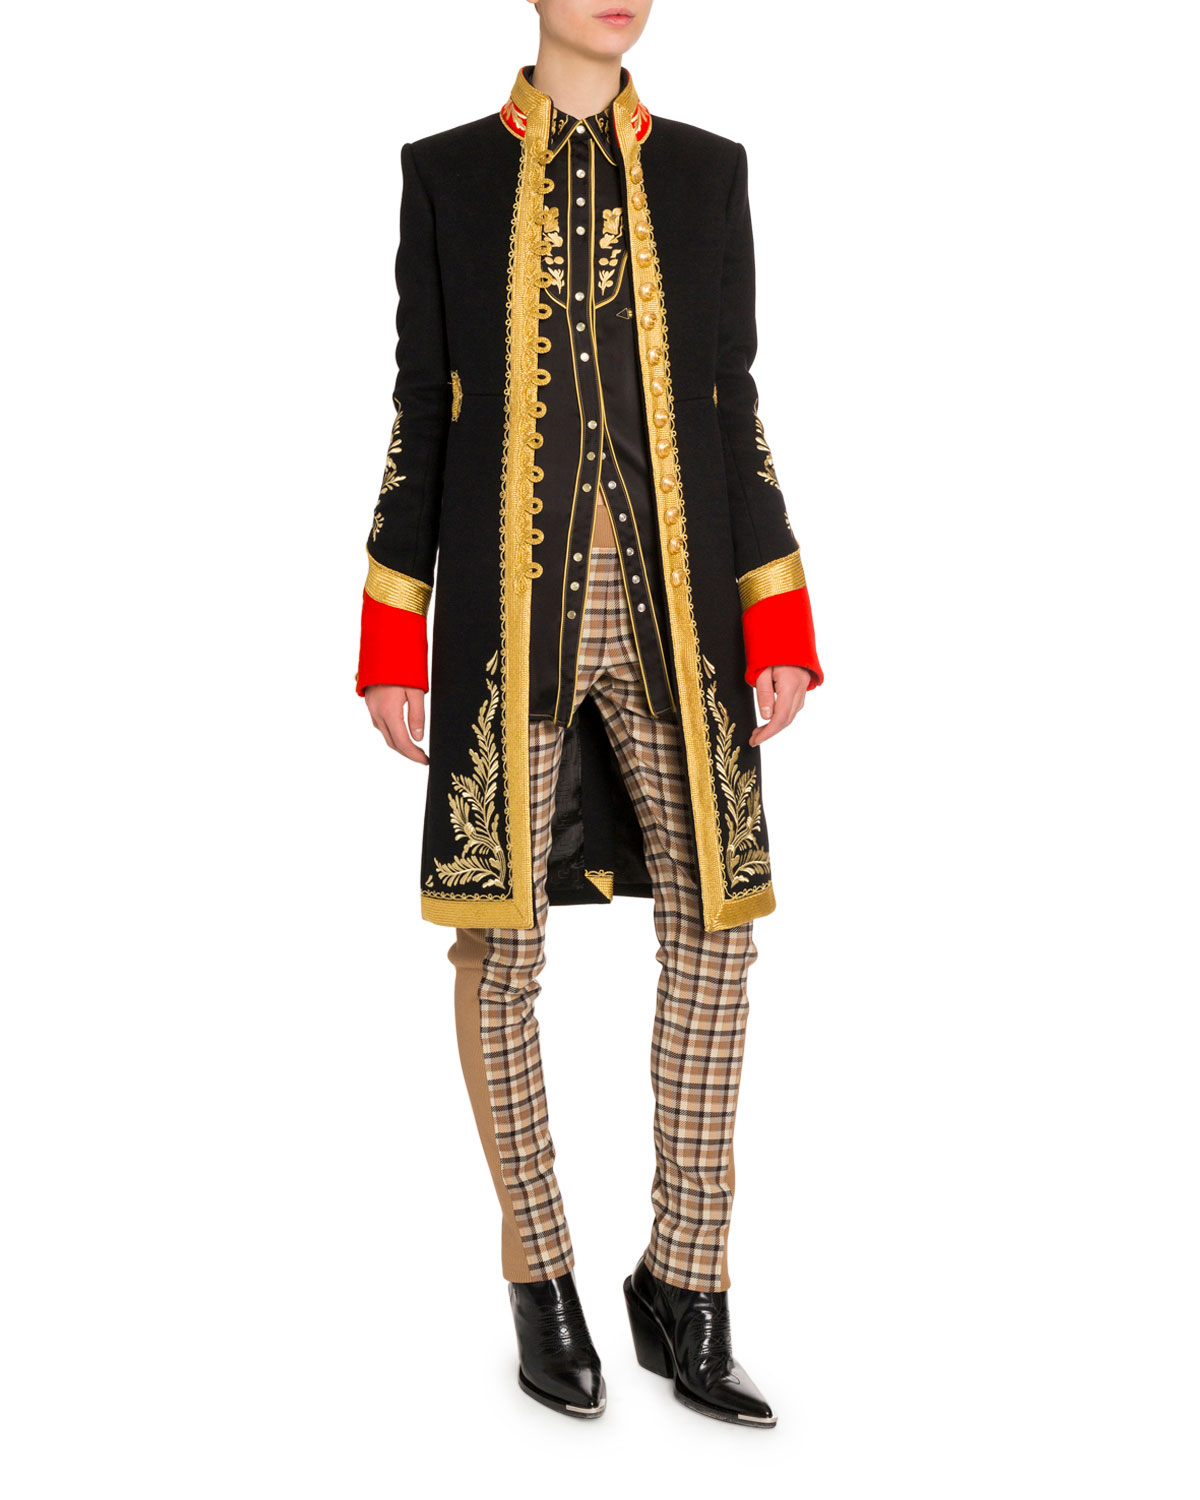 Paco Rabanne Coats GOLDEN EMBROIDERED MILITARY-STYLE COAT